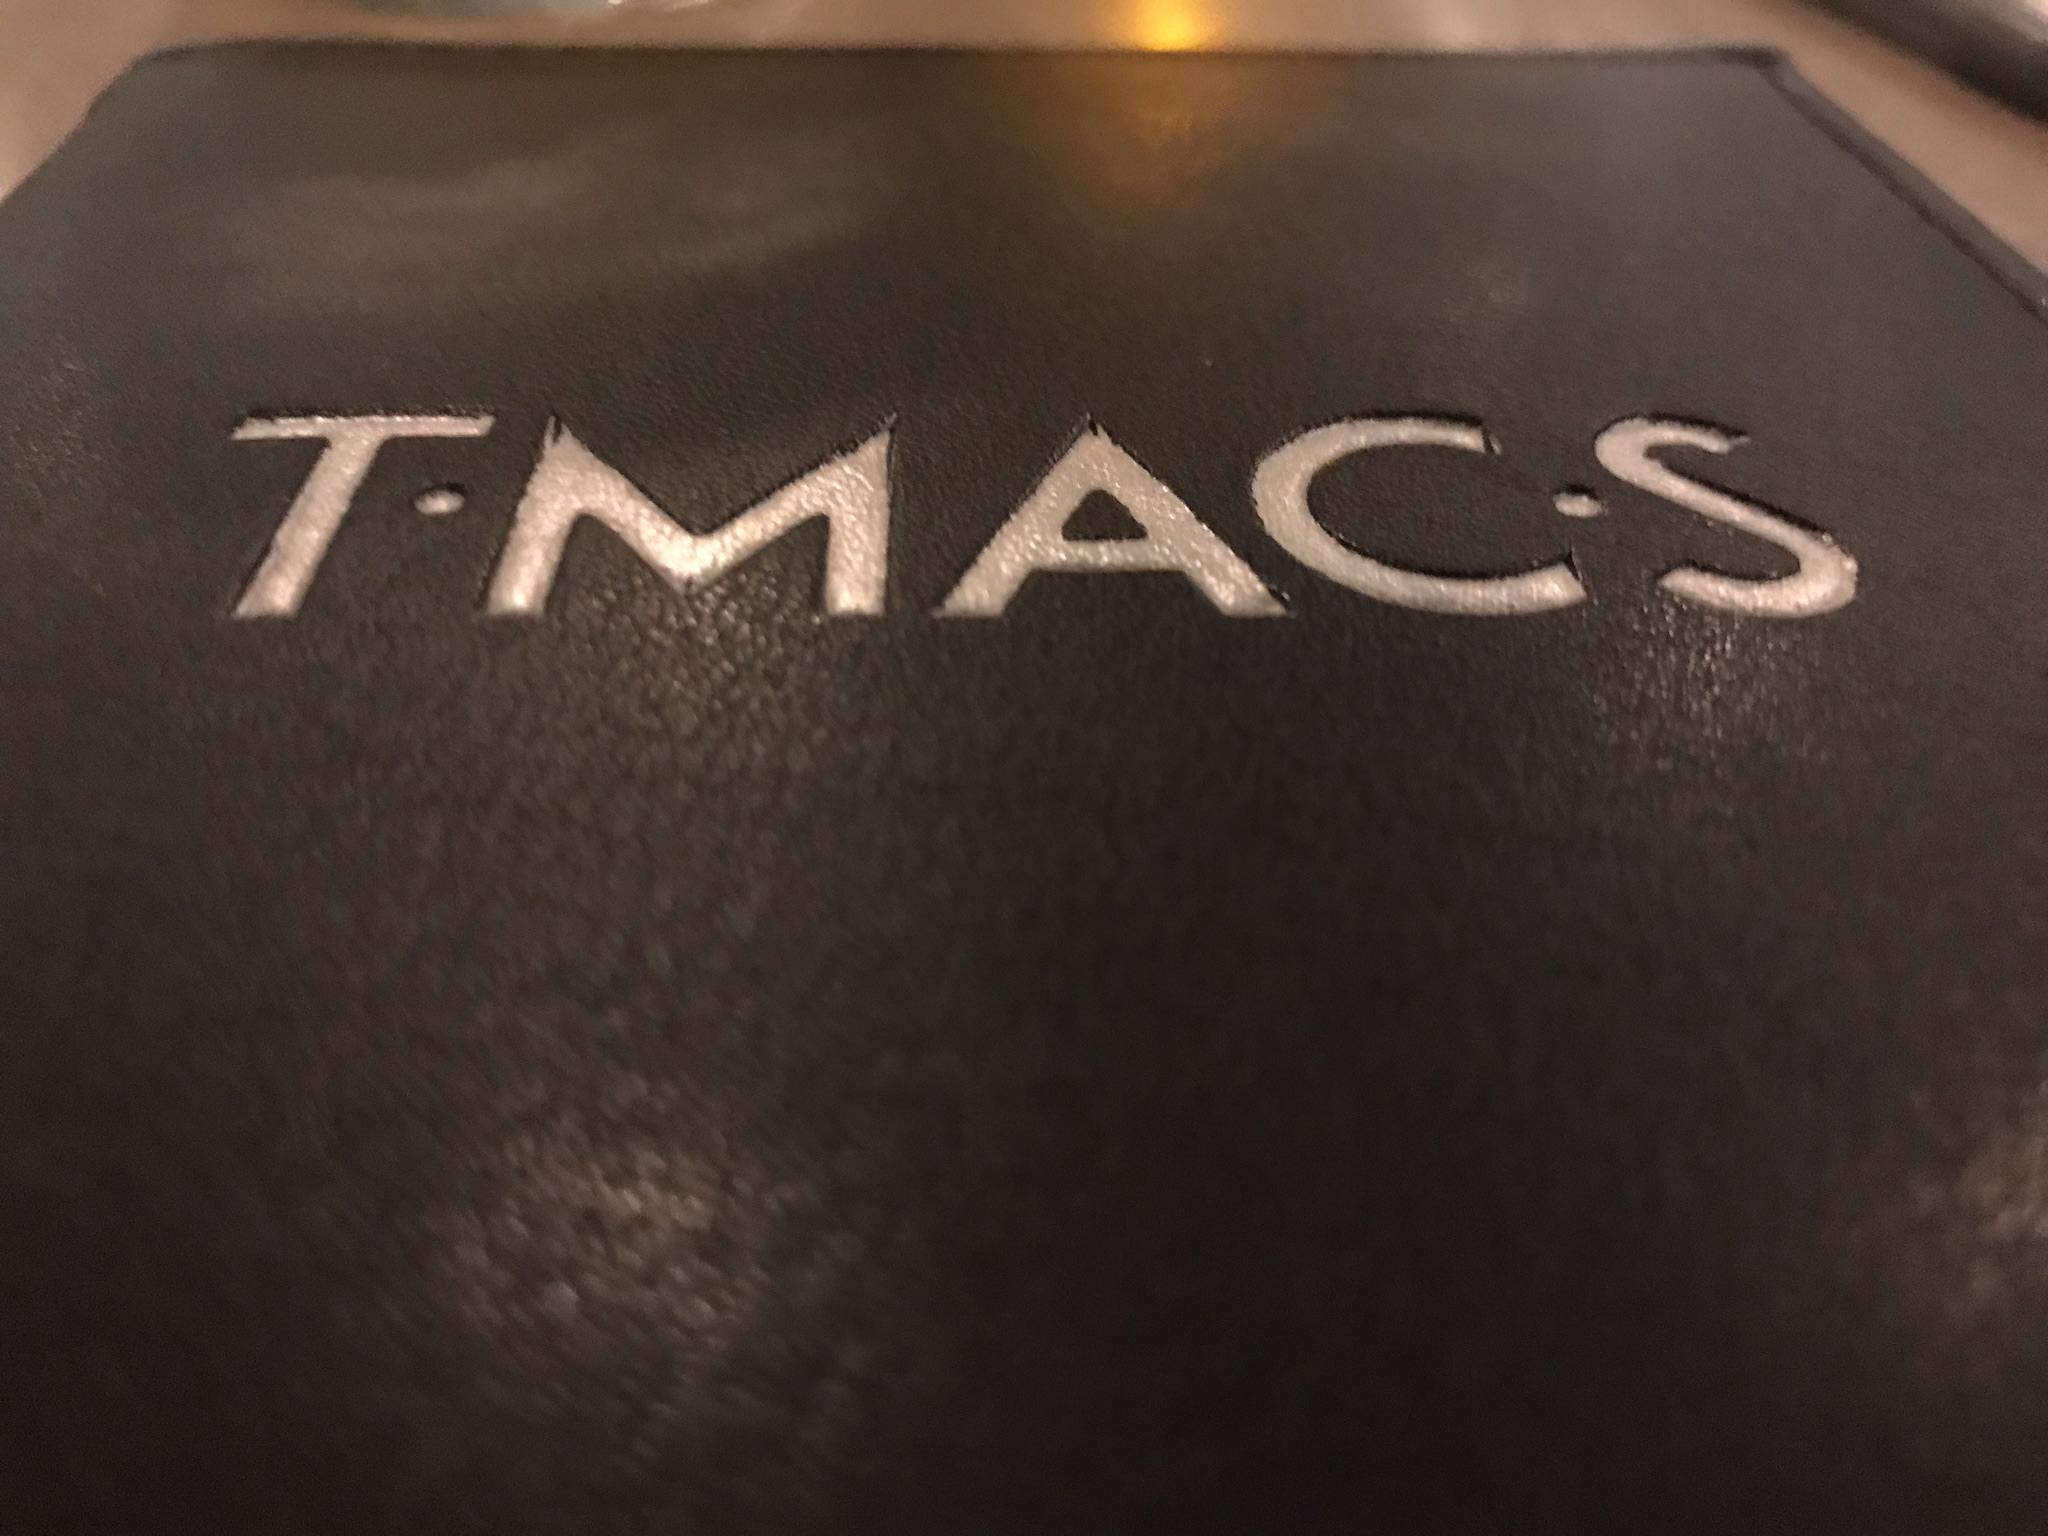 An Awesome Dinner at TMACS in Walla Walla - June 23 2018